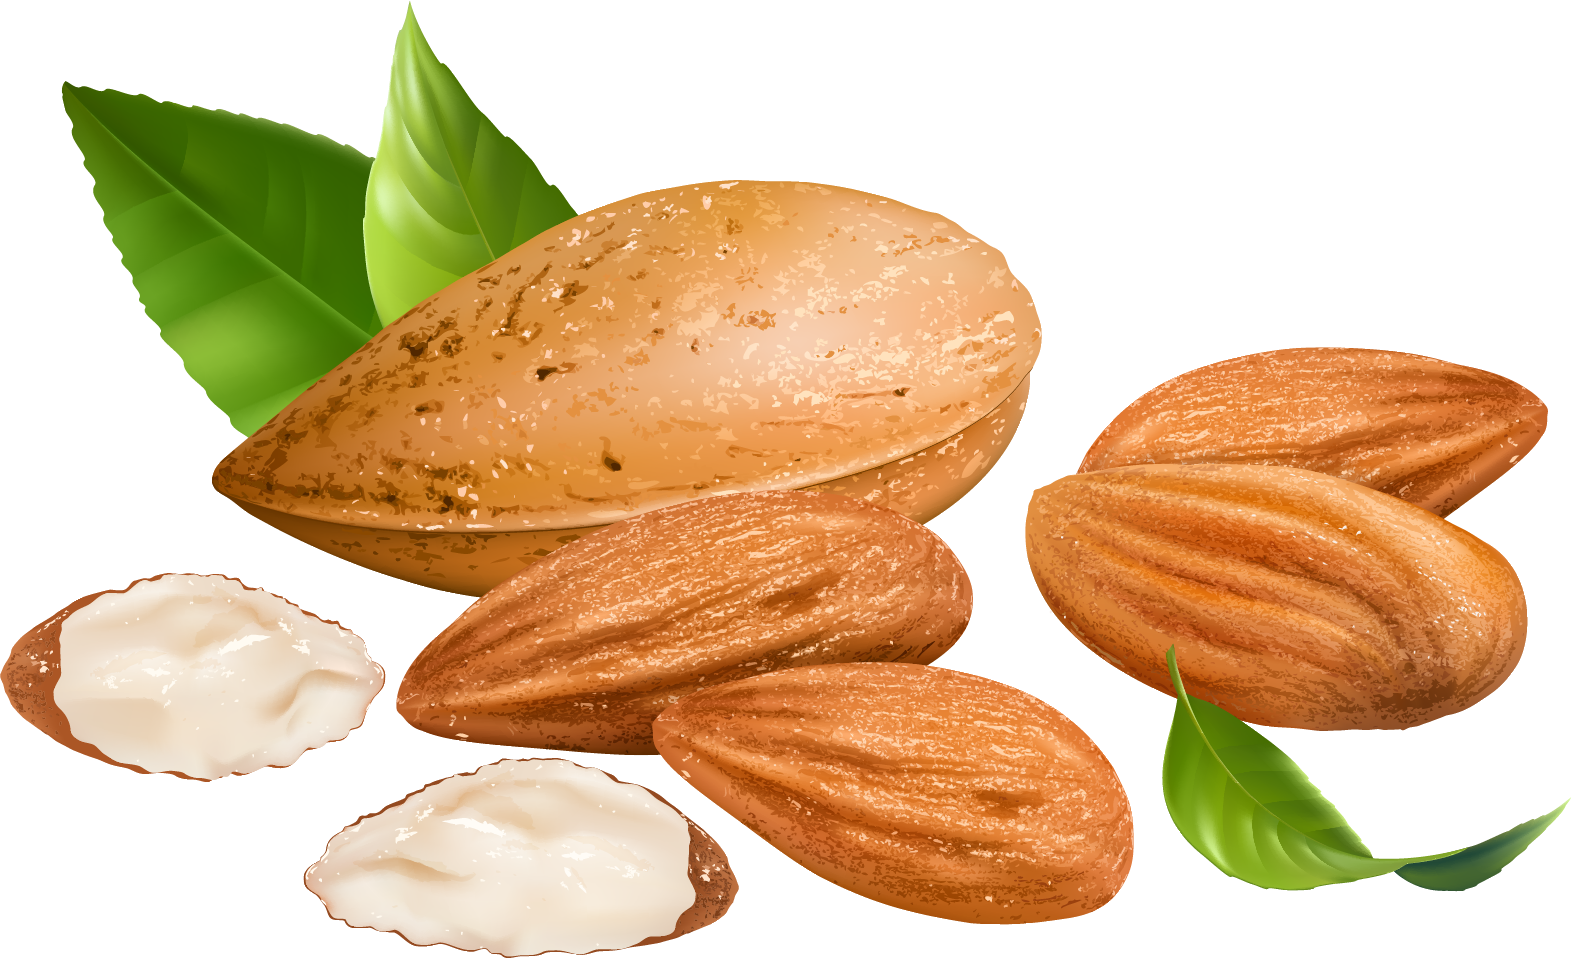 almond png transparent images png only #30287